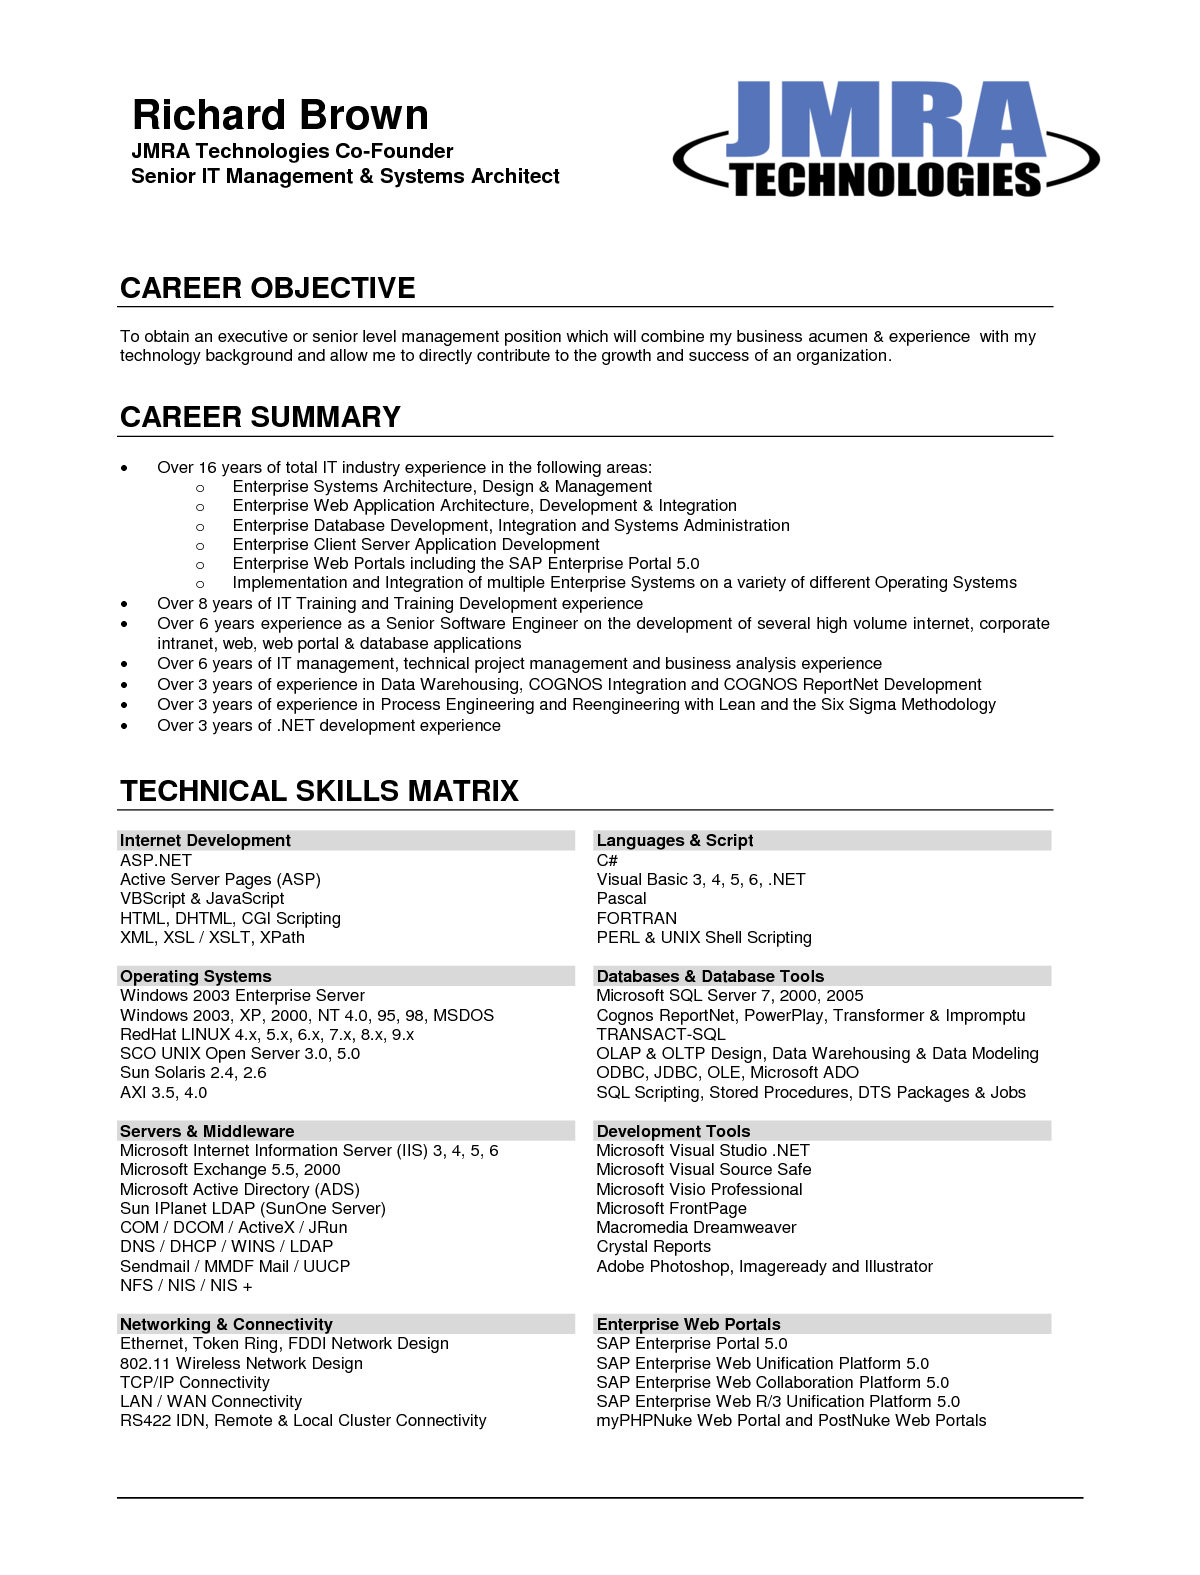 sales resume objective example resume objective statement for b16c3231fcbe538e44830eca91ca2192 sample resume simple objectivehtml career objective resume